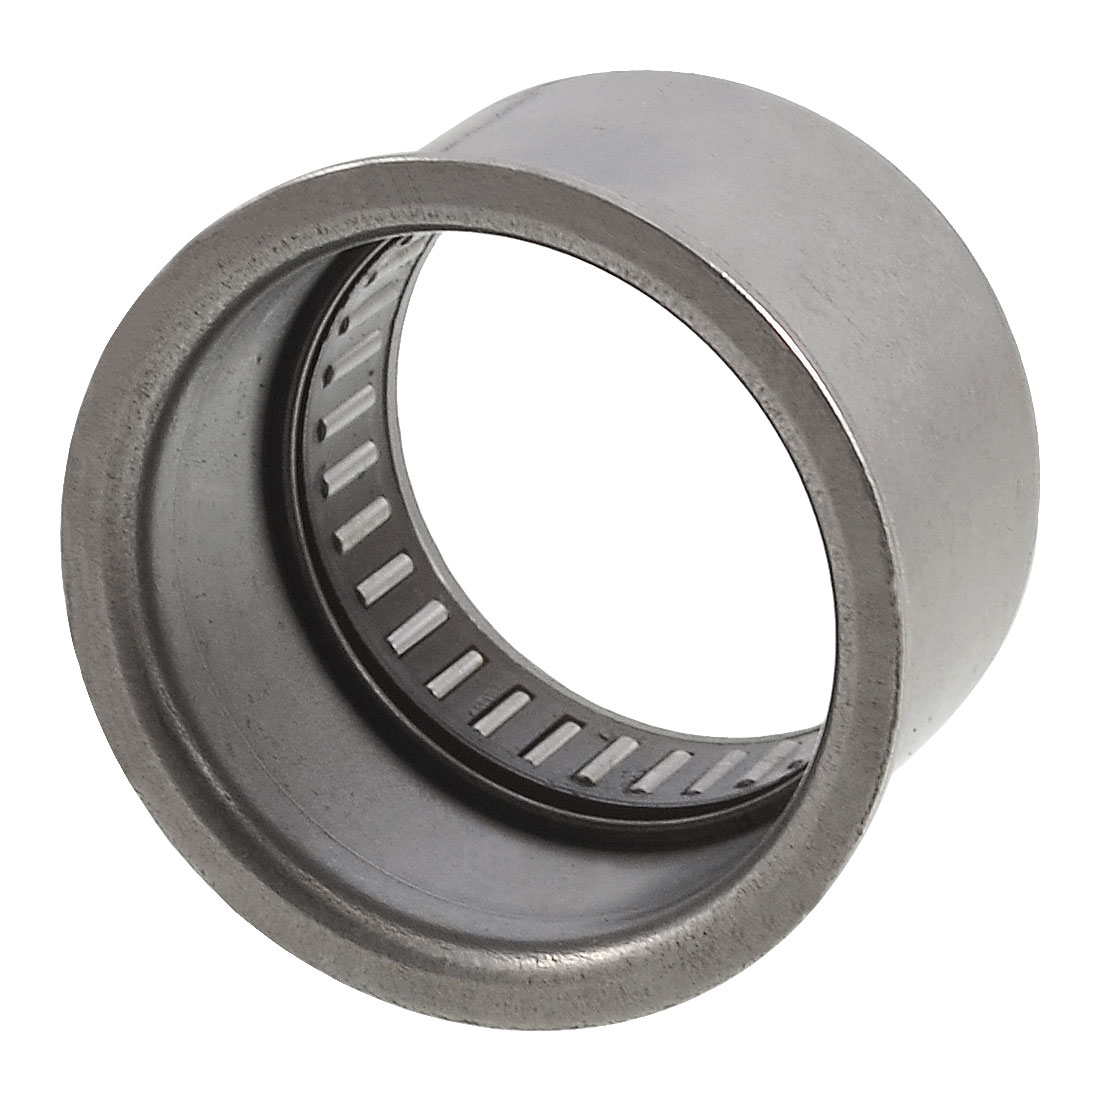 34mm x 42mm x 28mm Needle Roller Bearing for Bosch 24 Angle Grinder